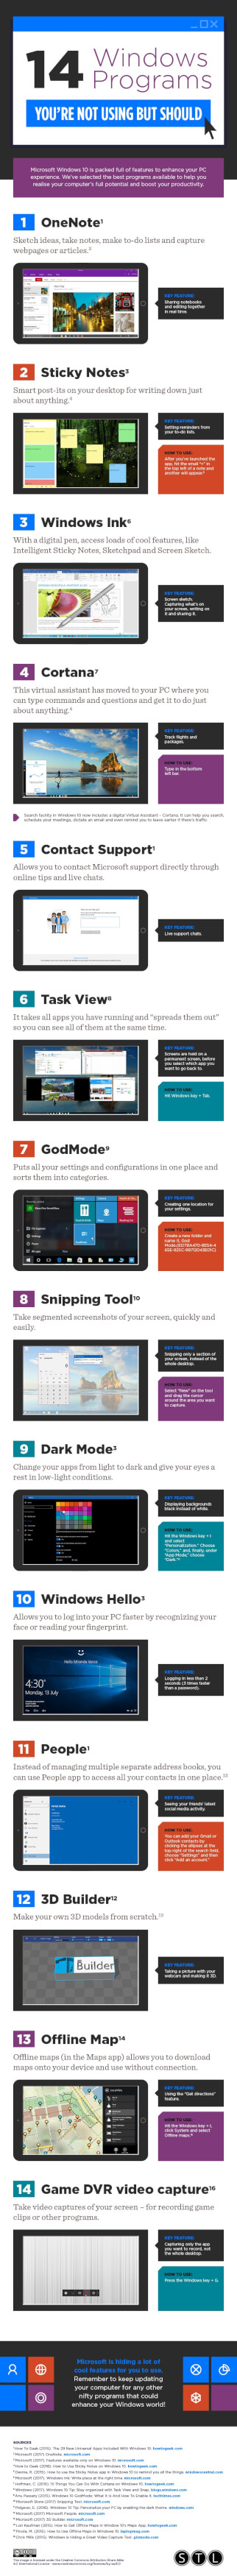 Windows Programs You're Probably Not Using But Should